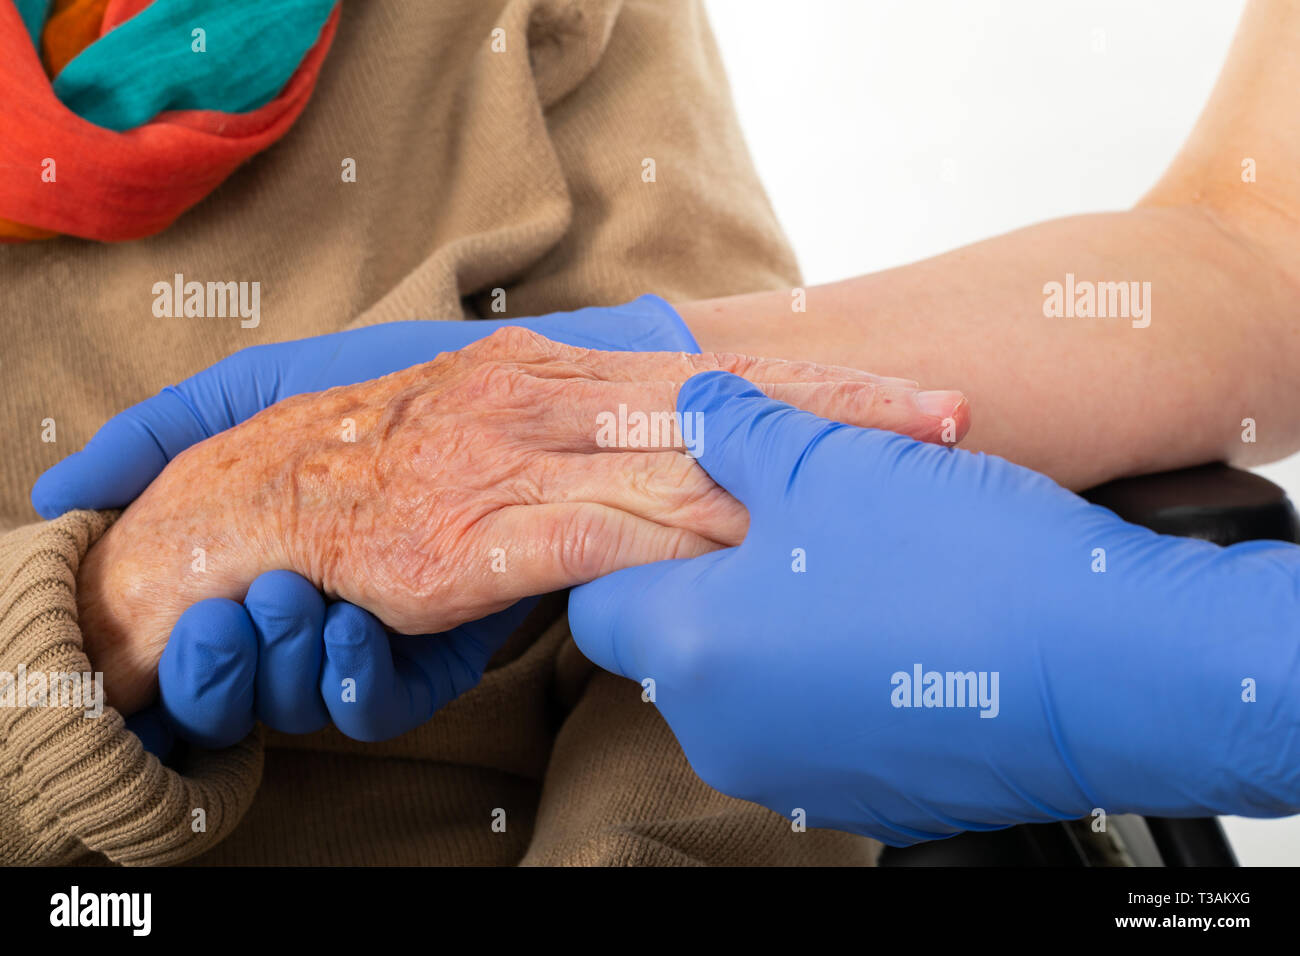 Close up picture of medical nurse wearing blue sterile gloves holding old disabled woman's hands - Stock Image